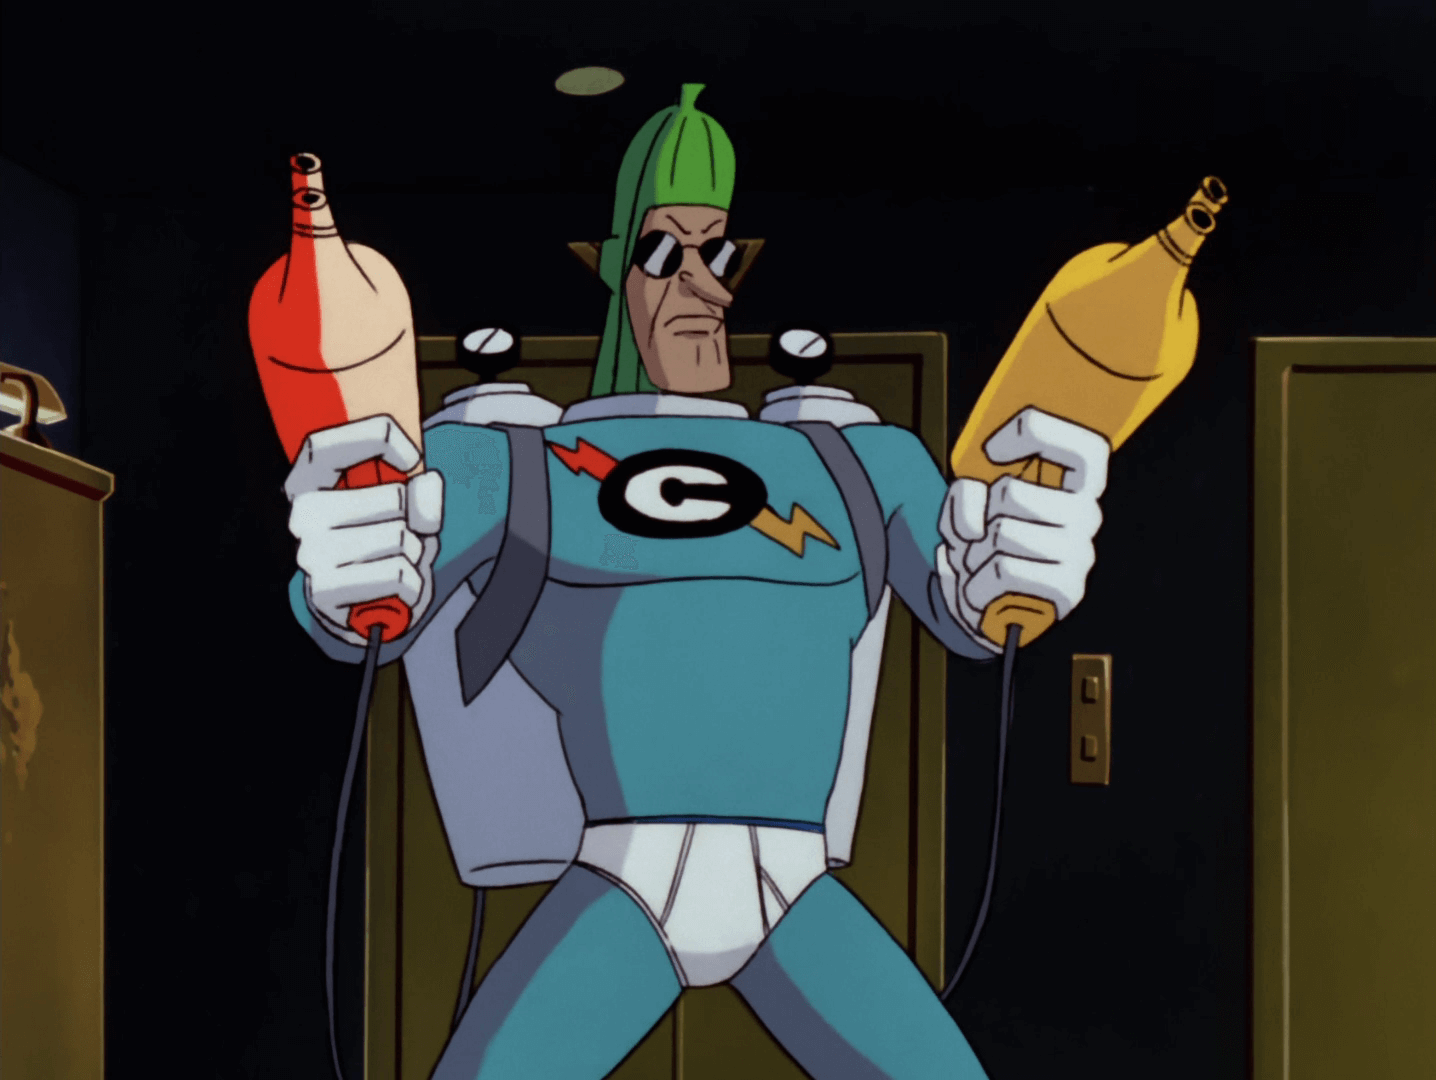 Condiment_King-2.png